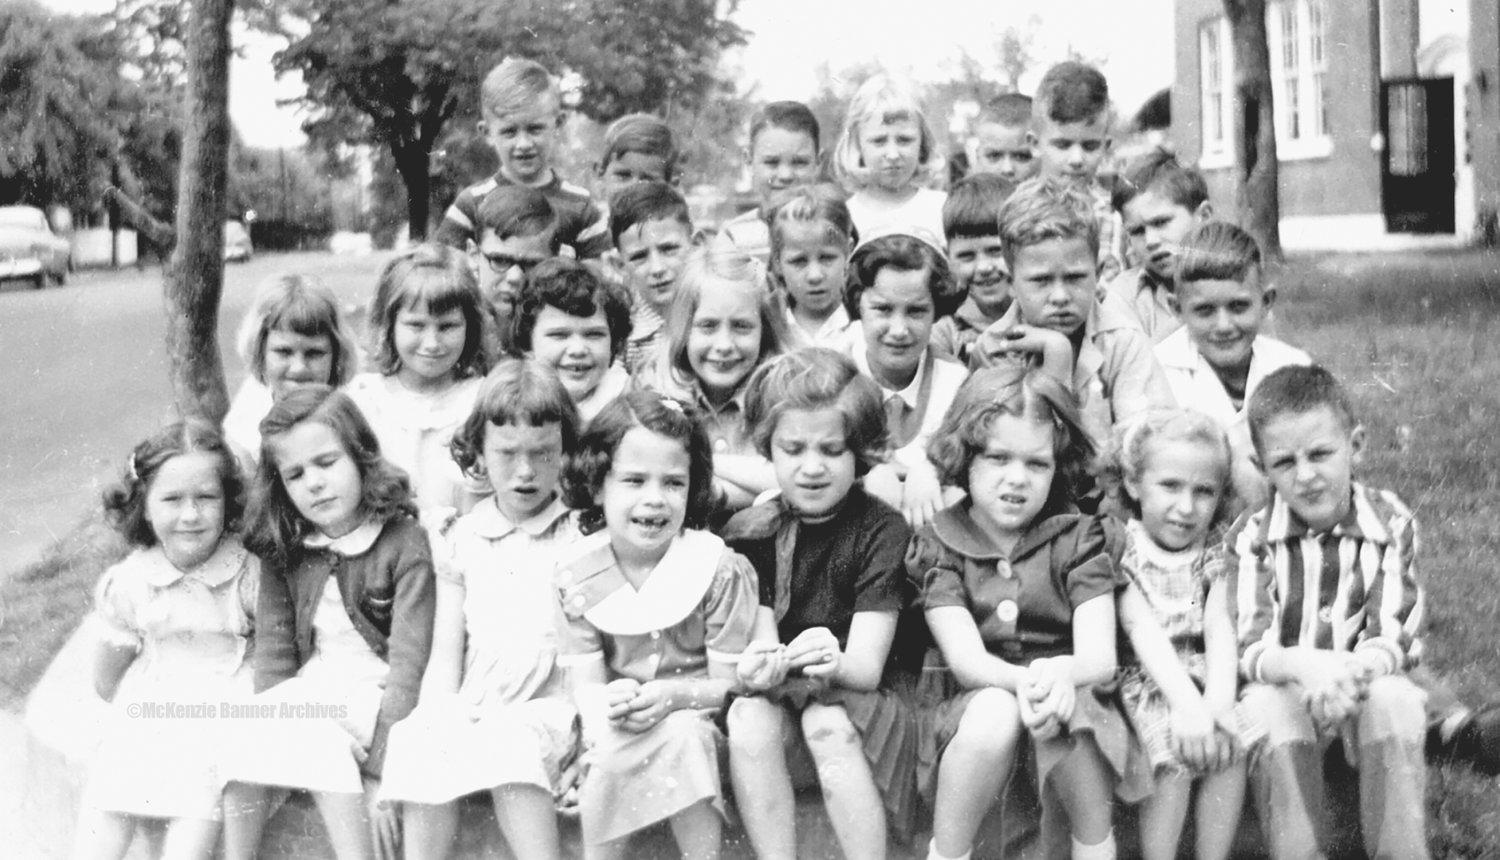 McKenzie Elementary First Grade 1954-55. Members pictured: Linda Waldrup, Ann Sexton, Mary B. Wheat, Donna Ward, Emily Young, Ruth Ann Wiley, Judy Seagraves, Joe Sasser, Mary Ruth Scott, Pat Stone, Jean Swearingen, Beverly Sparks, Beverly Summerlin, Rollin Trull, W. L. Shell, Roy Williams, Marvin Williams, Johnny Thompson, Katie Wallace, Bruce Wilkinson, Don Wallace, Buddy Wiggleton, Skip Trevathan, Beverly Travillian, Wylie Wilson, and Billy Thompson. Photo submitted by Donna Ward.